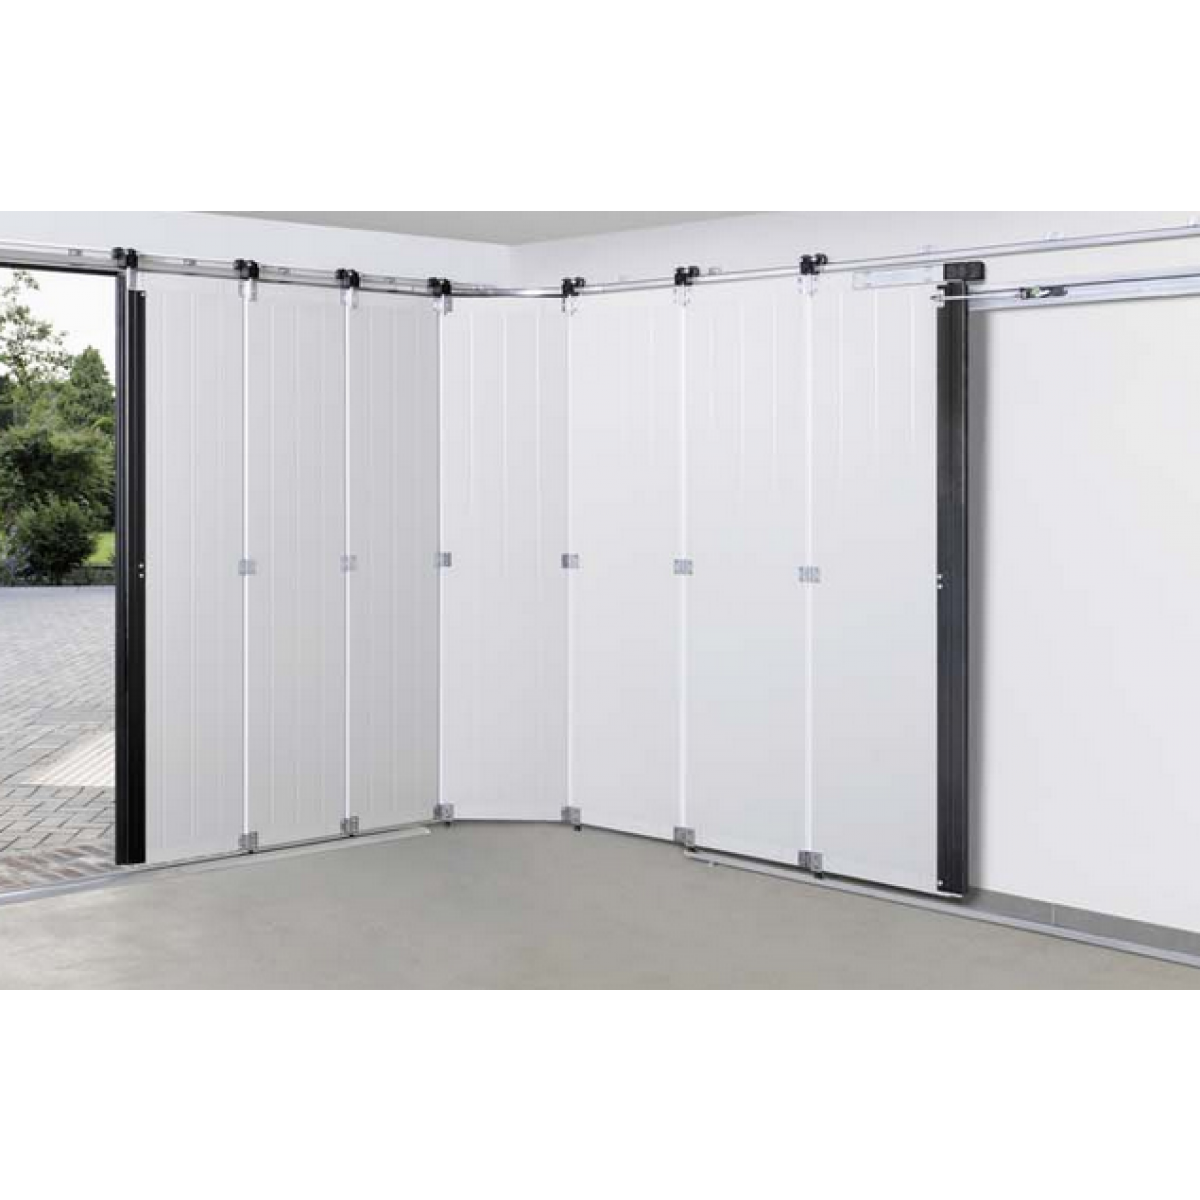 porte lat rale de garage hst hormann portes de parking collectifs. Black Bedroom Furniture Sets. Home Design Ideas